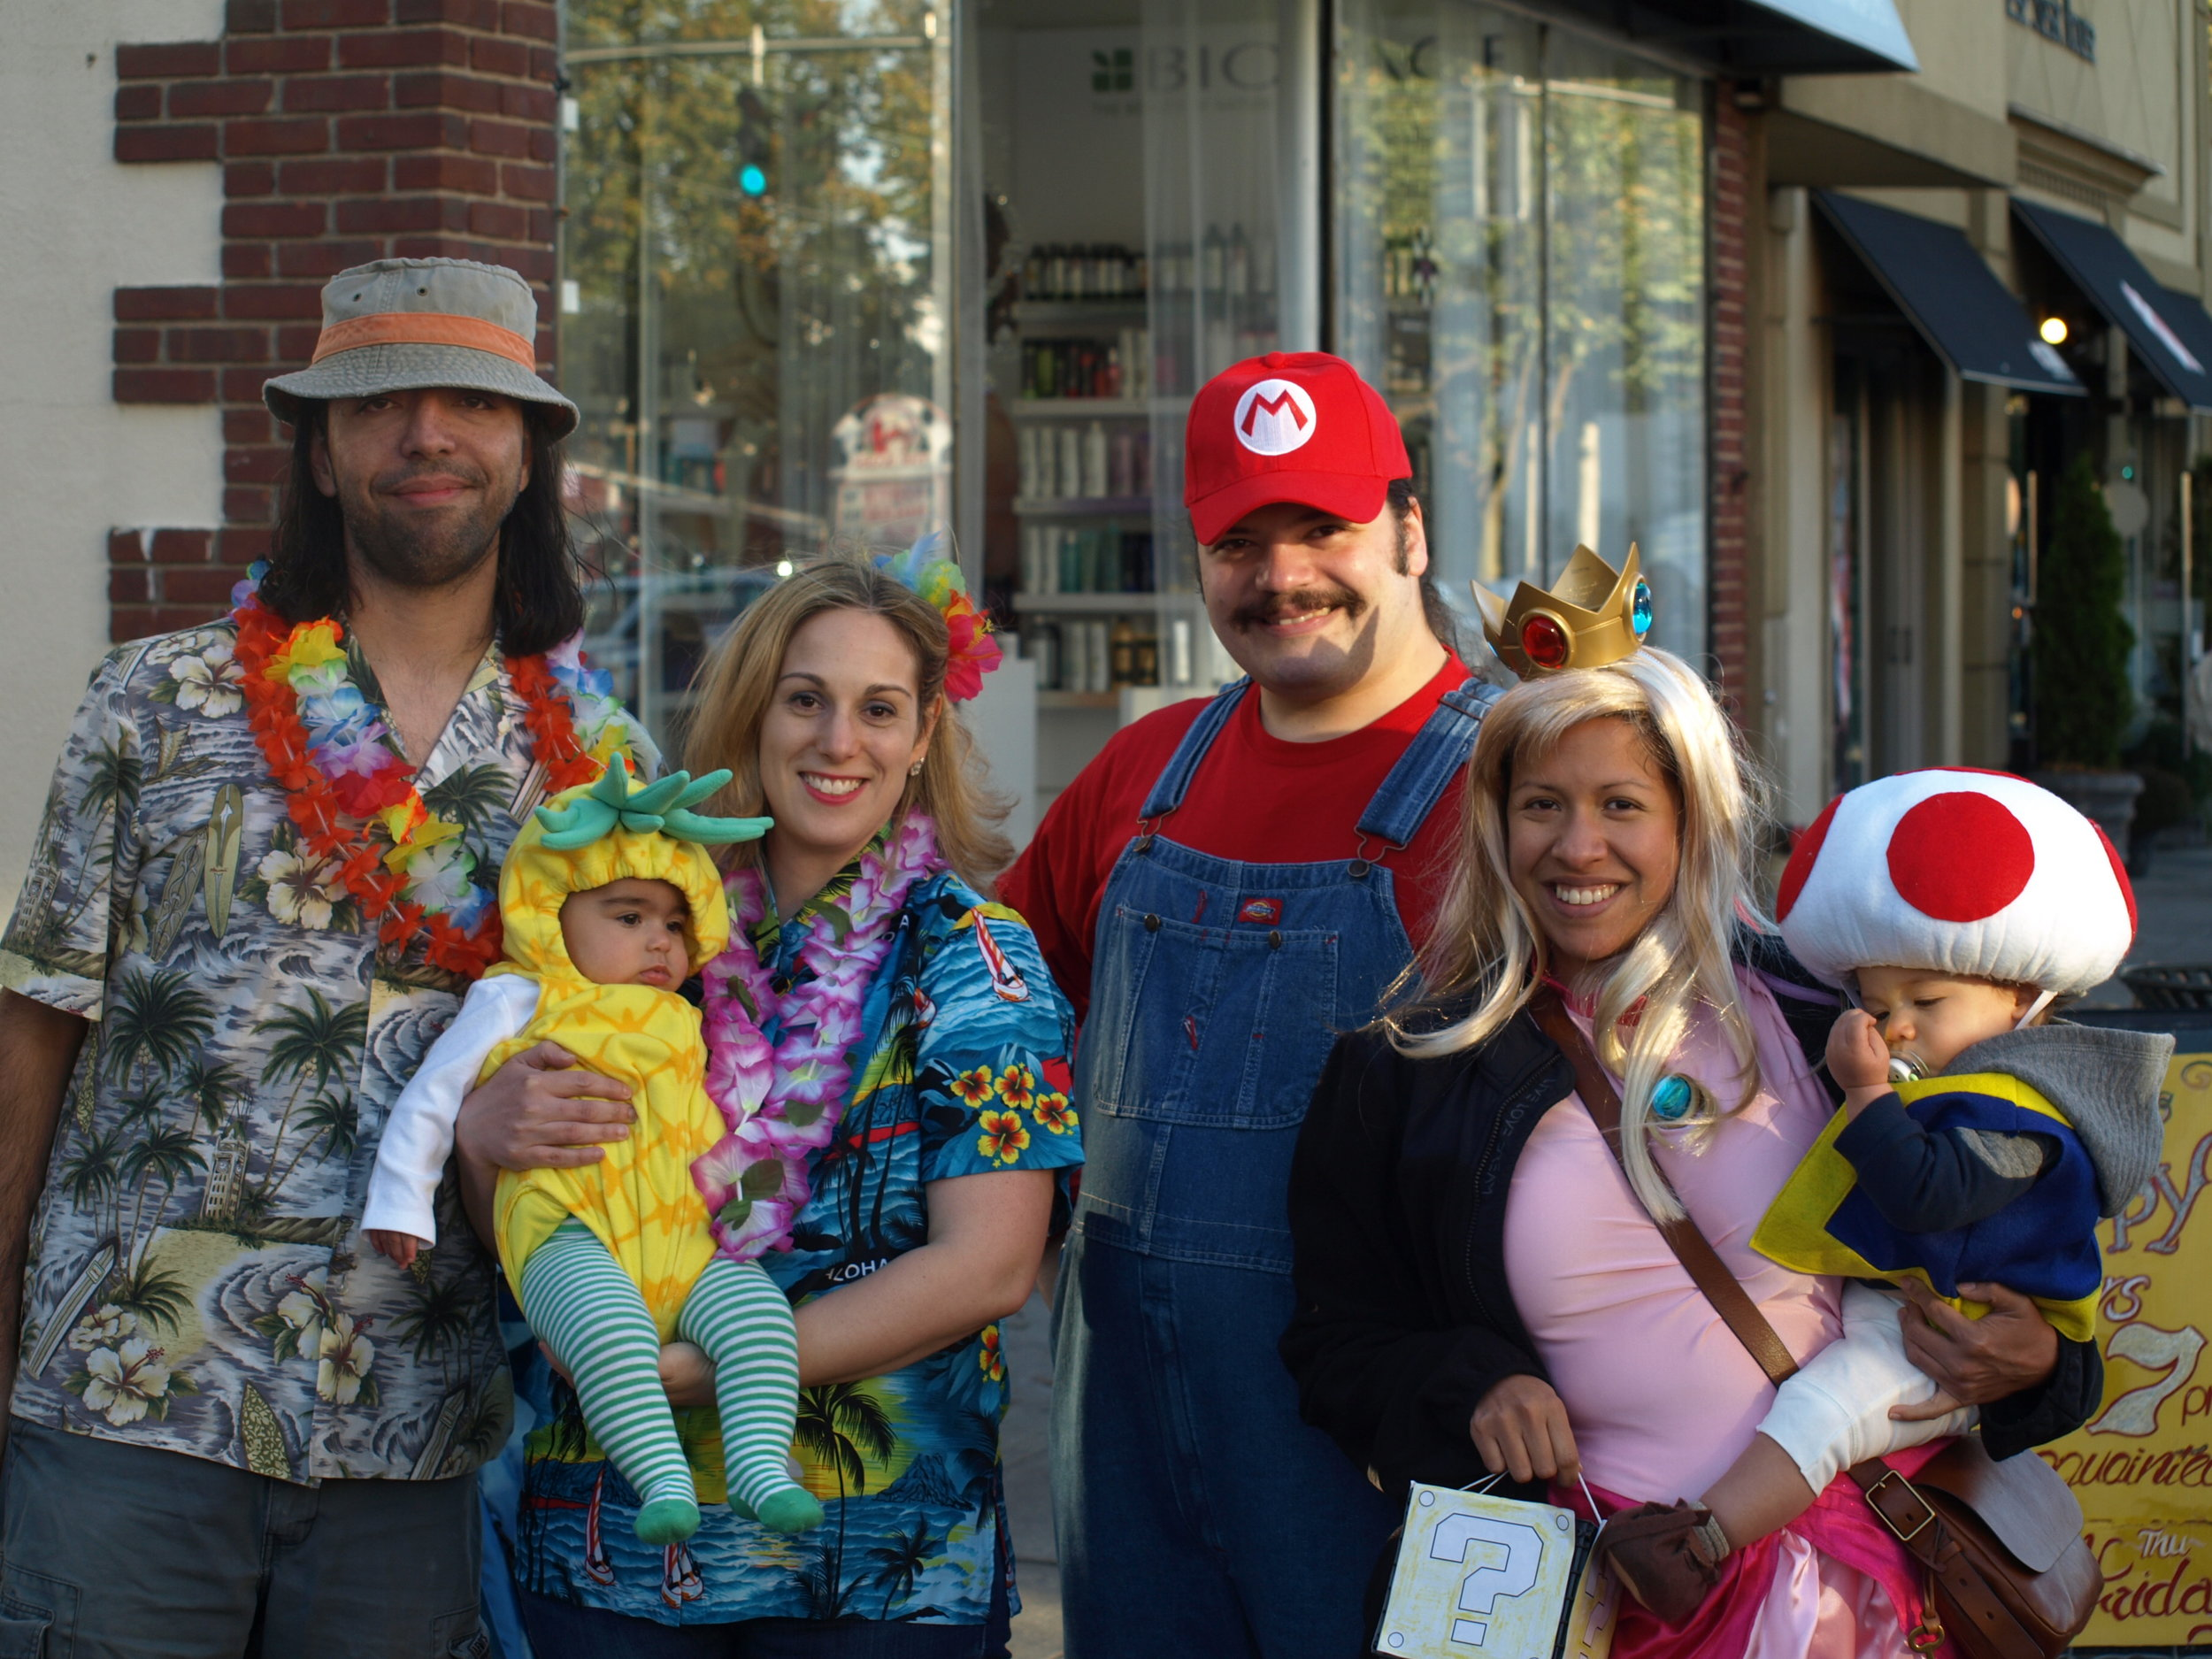 Wall Street and others across Huntington village were packed on Tuesday for the Town's annual Children's Halloween Costume Parade.  Long Islander News Photo/Connor Beach